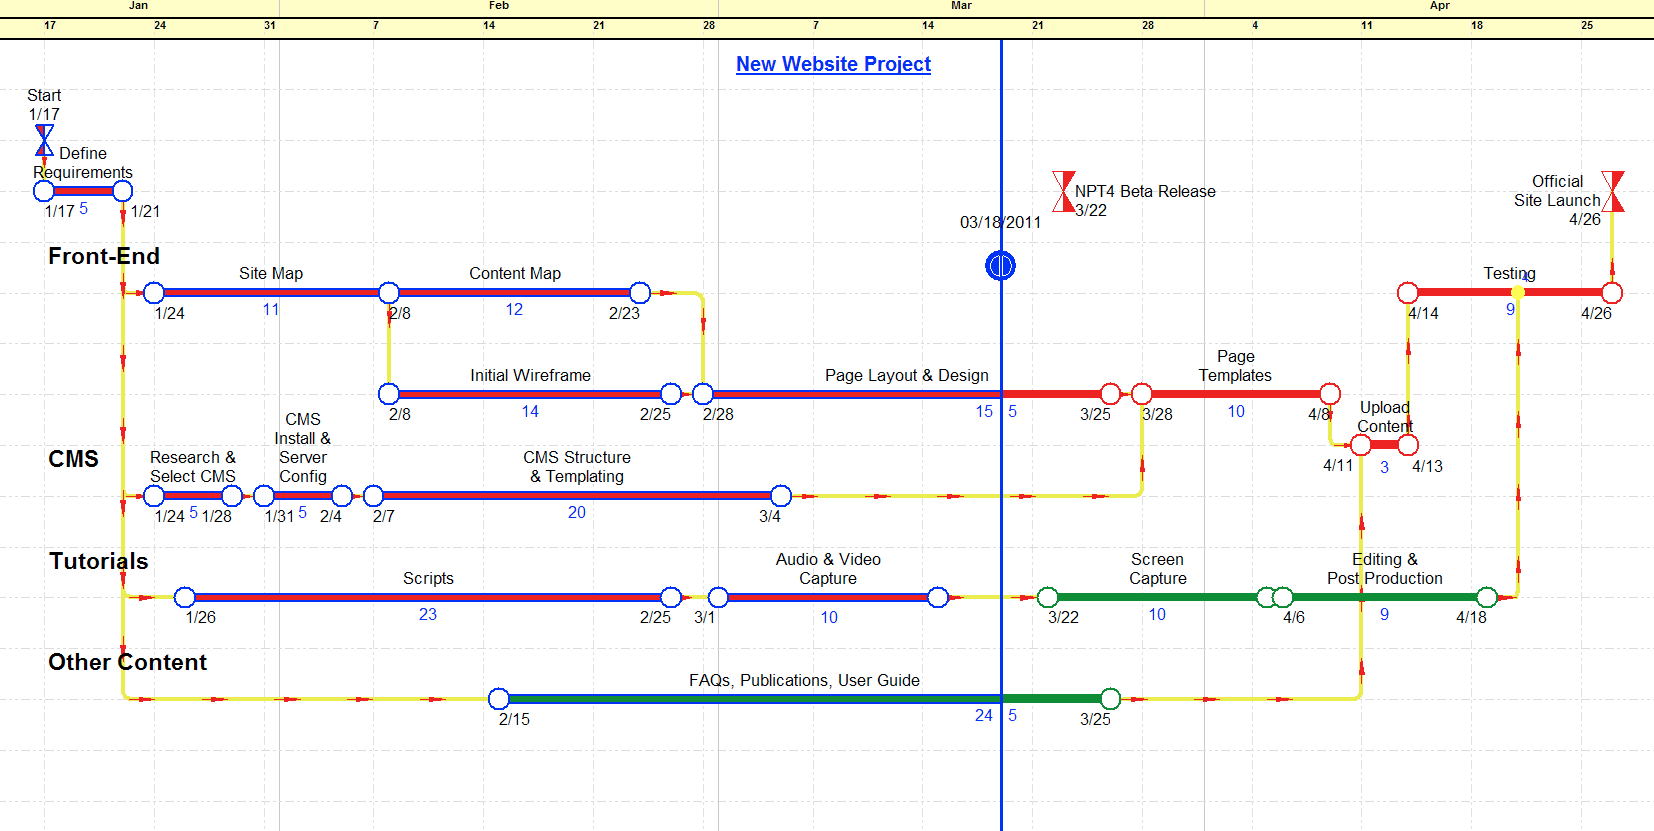 Graphical Path Planning – Sample Project Planning